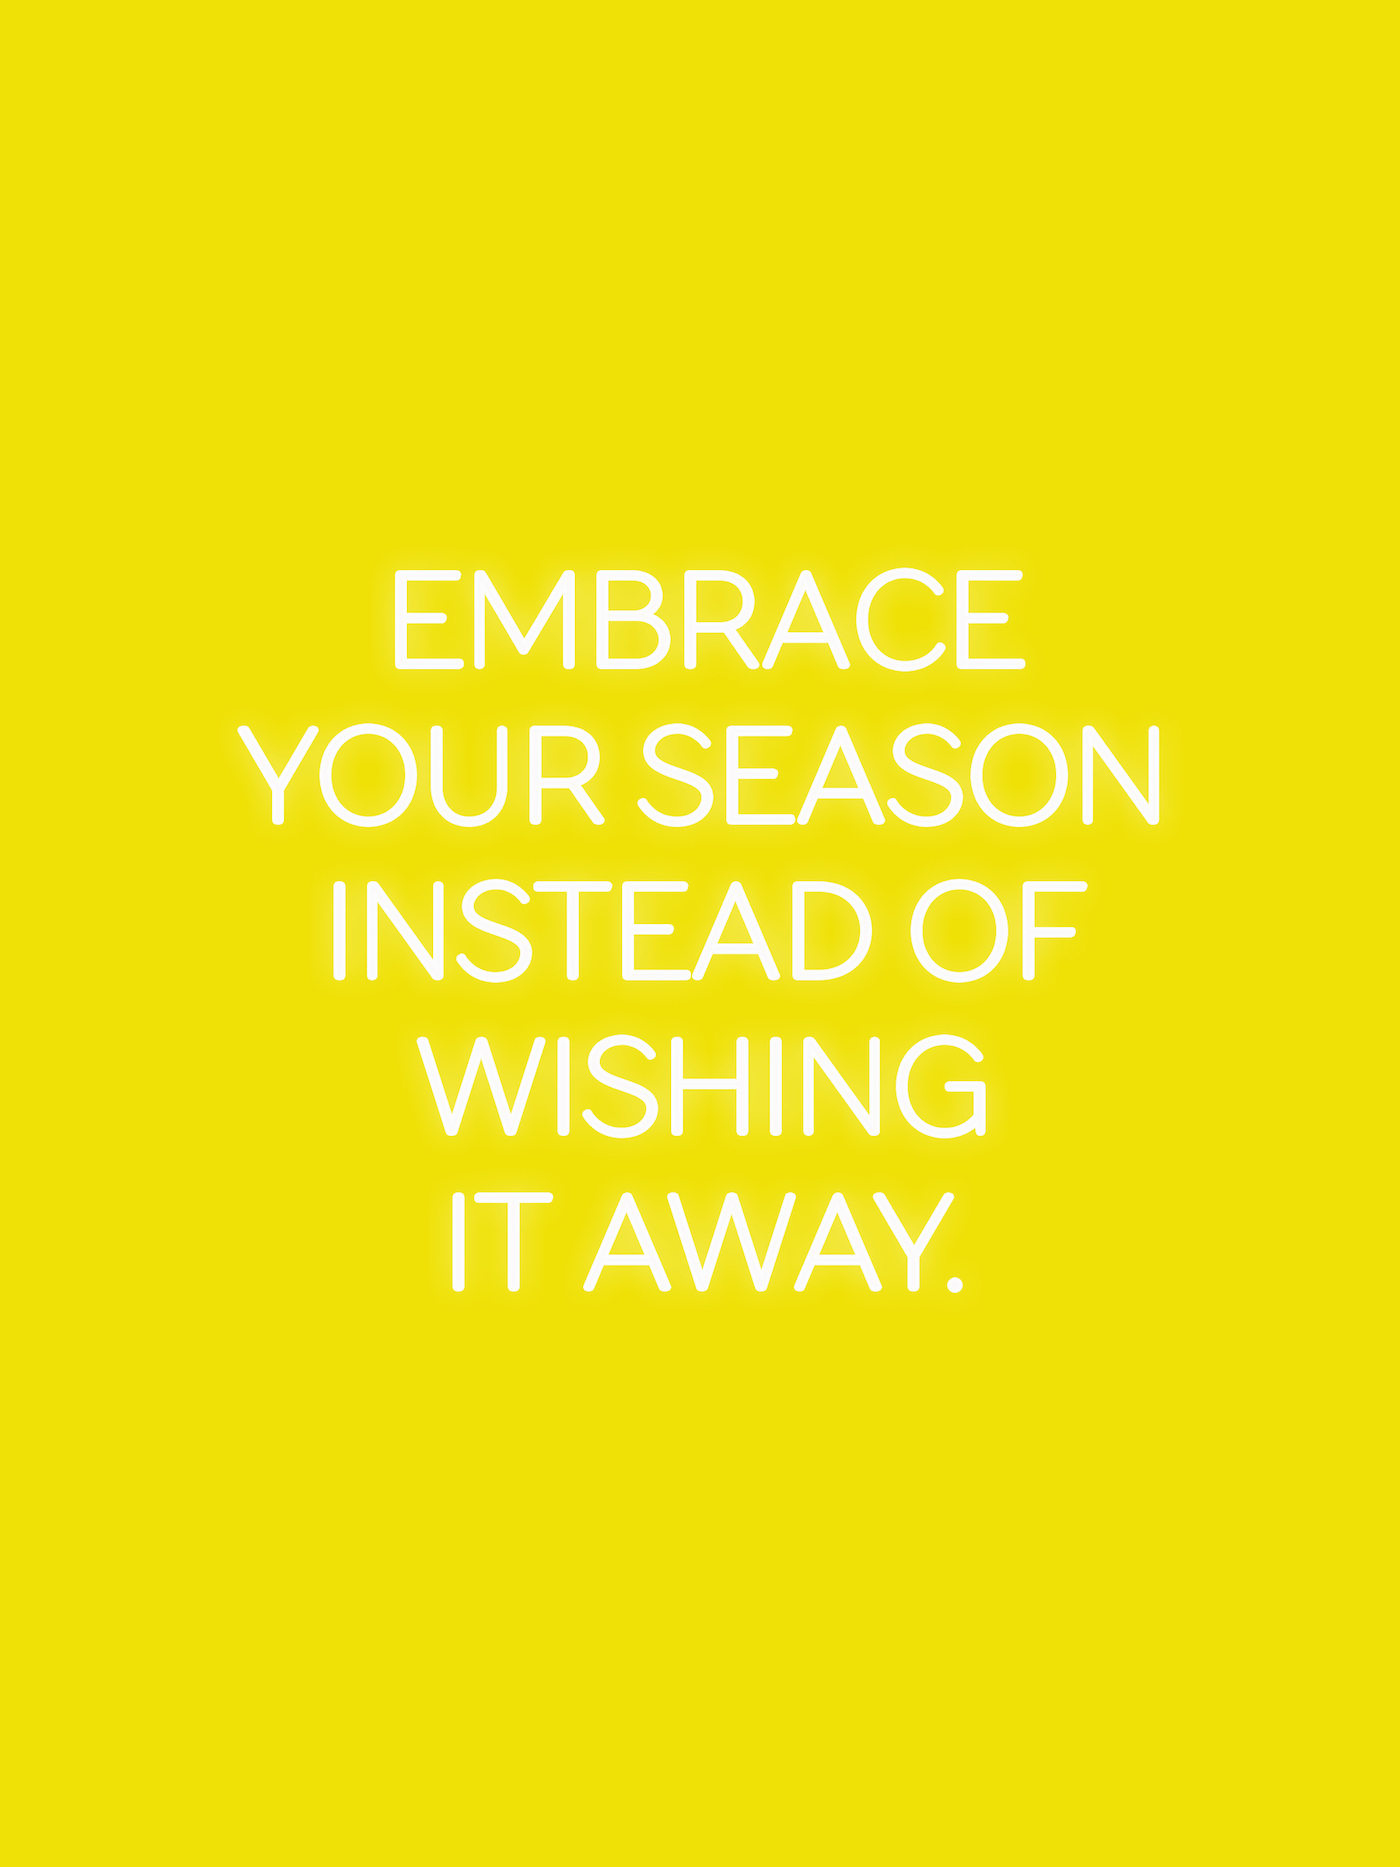 """embrace your season instead of wishing it away."" there is a time and a purpose for everything under heaven. find the joy in THIS season without wishing it away for the next! www.thehiveblog.com"